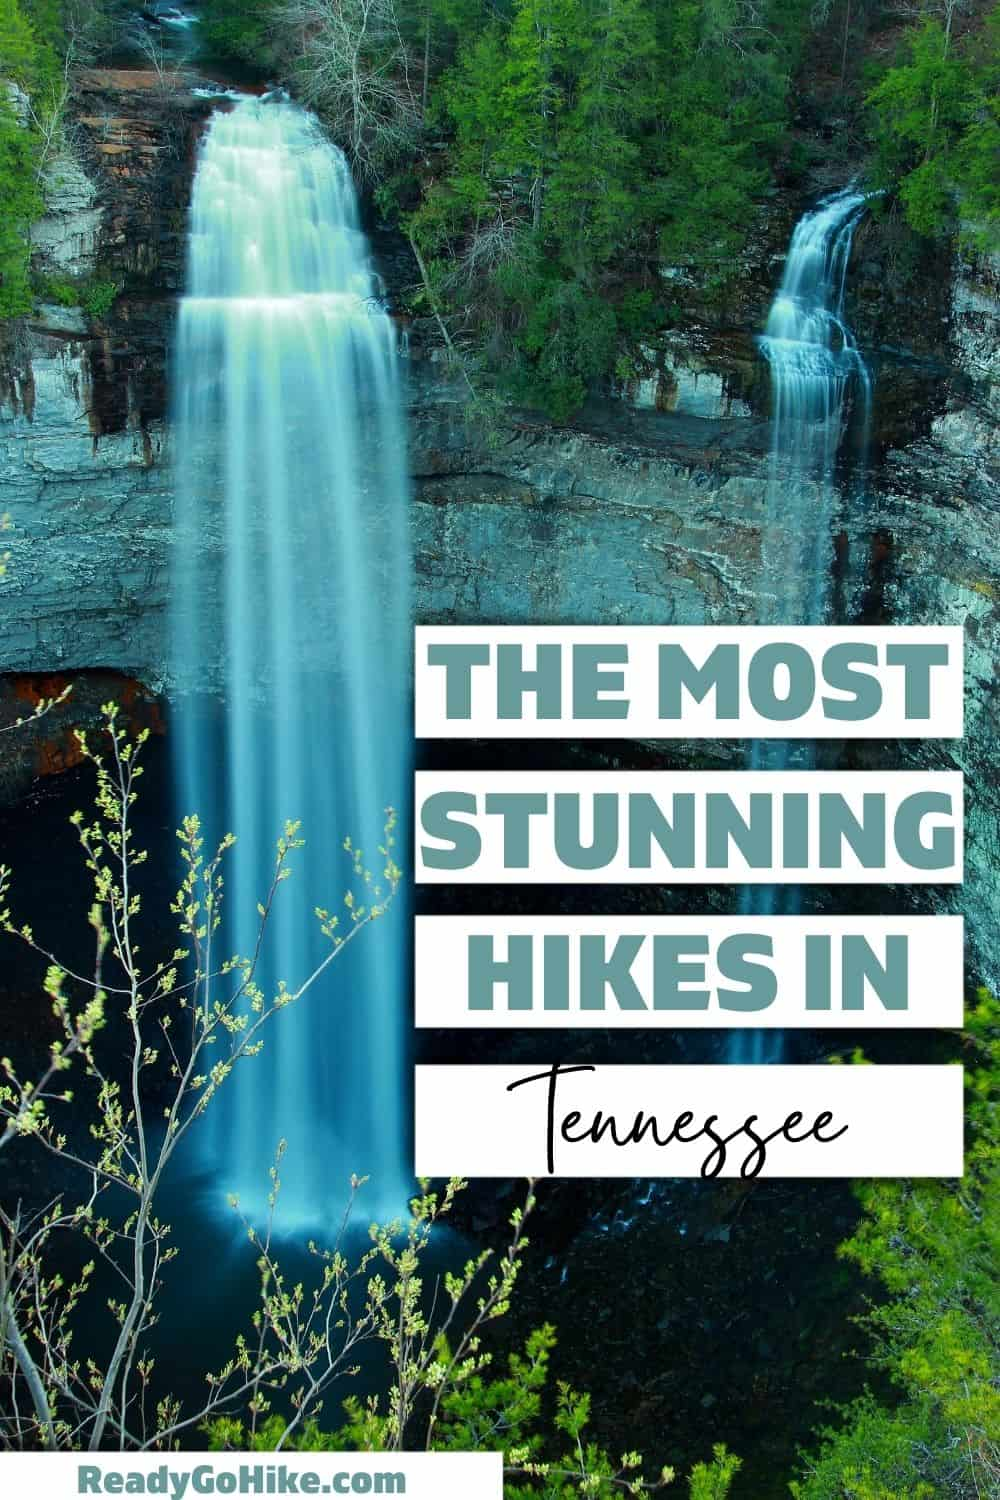 Picture of Fall Creek Falls with text overlay The Most Stunning Hikes in Tennessee